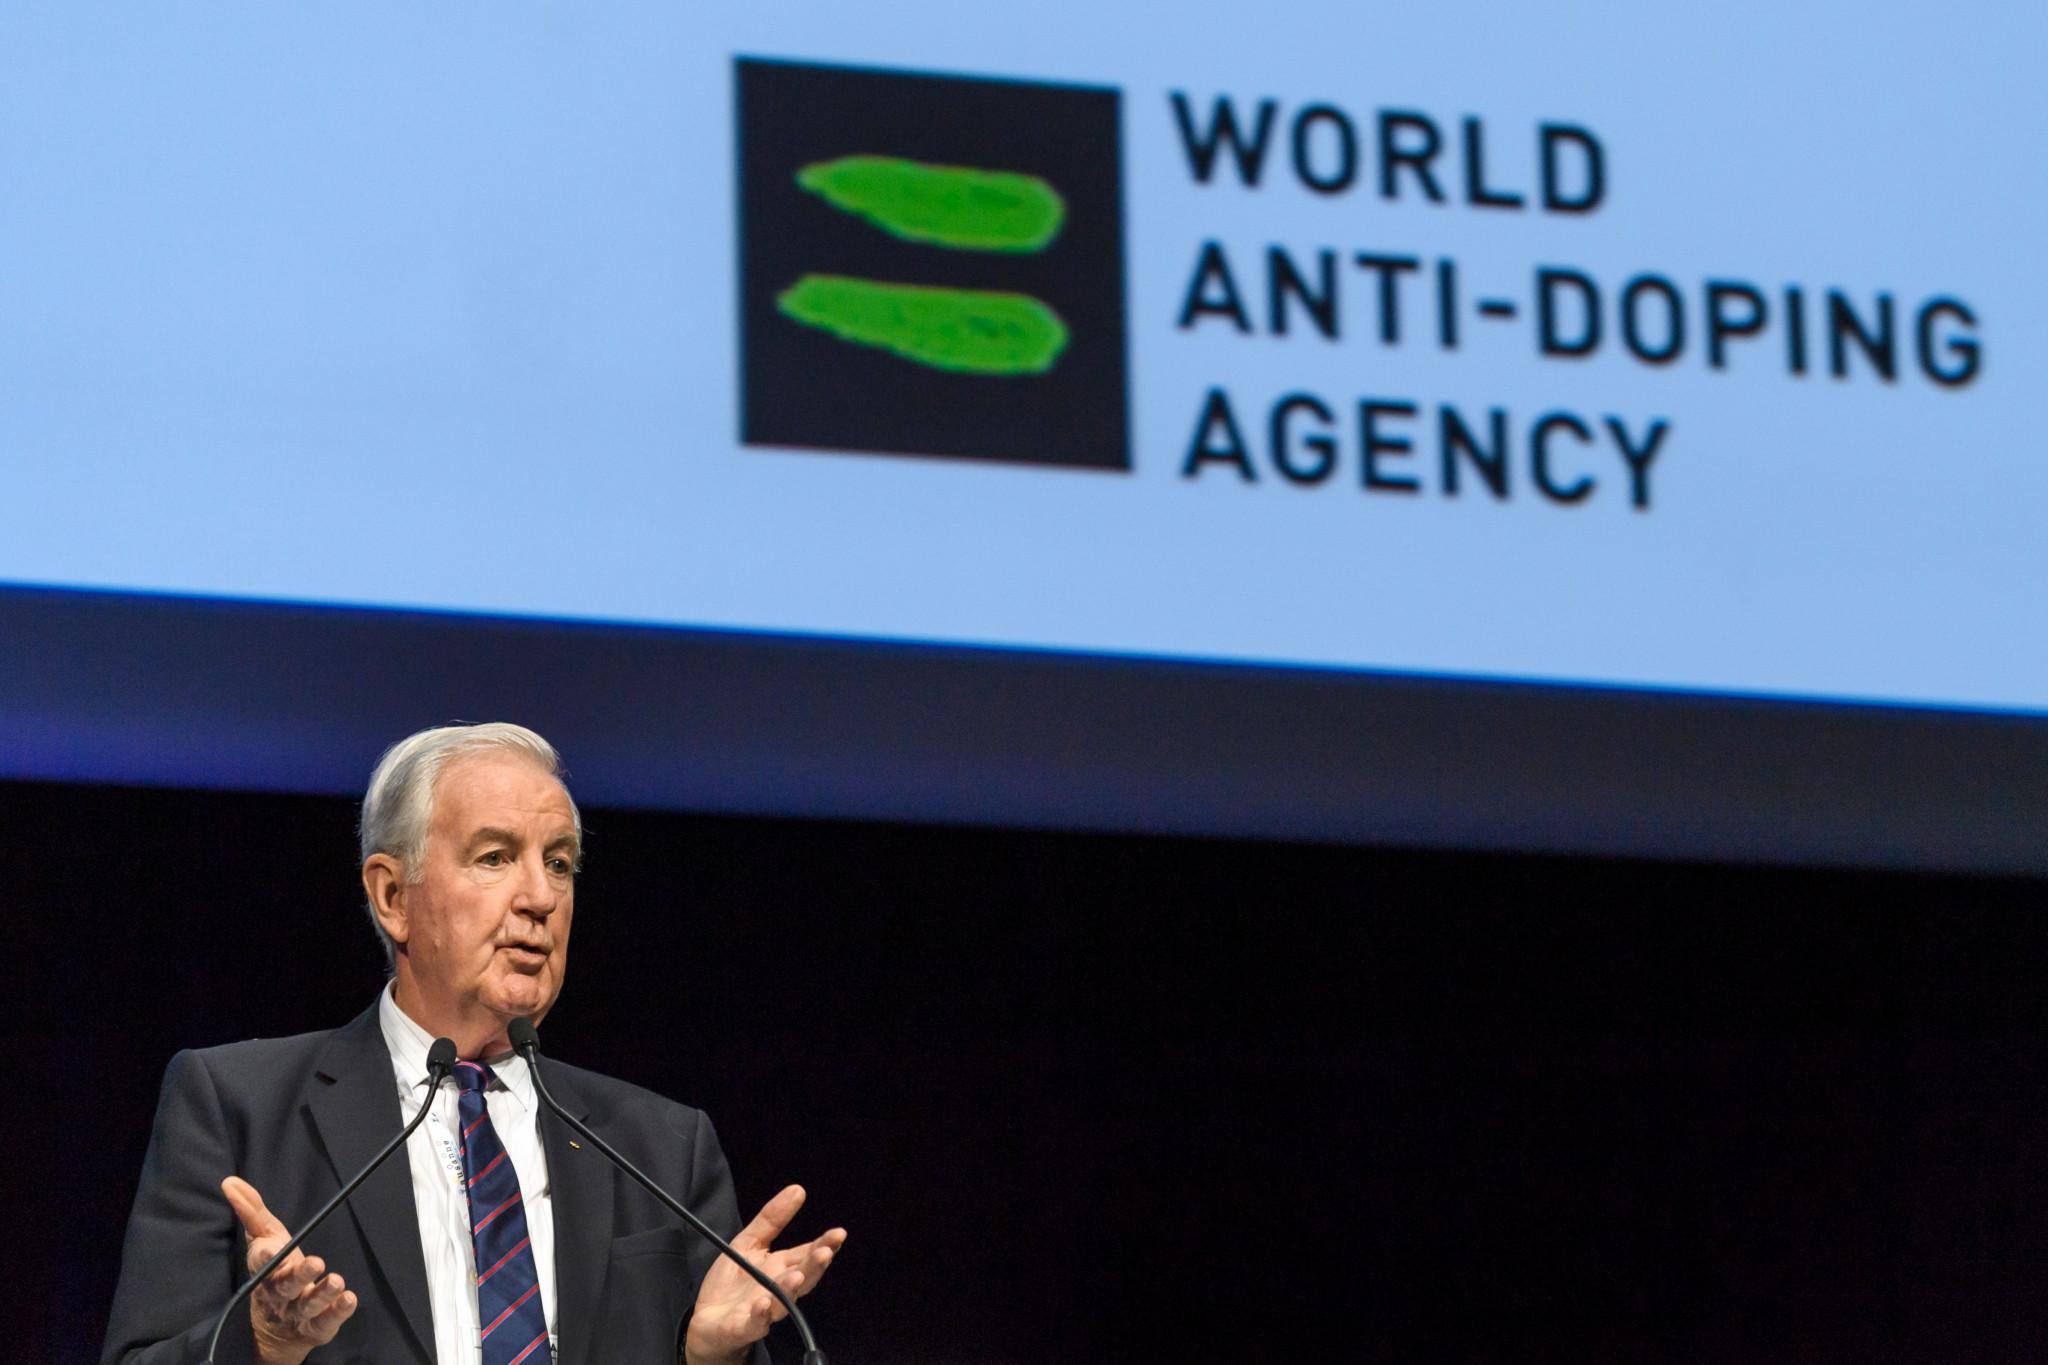 The World Anti-Doping Agency could declare RUSADA non-compliant again if evidence of tampering is proven ©Getty Images